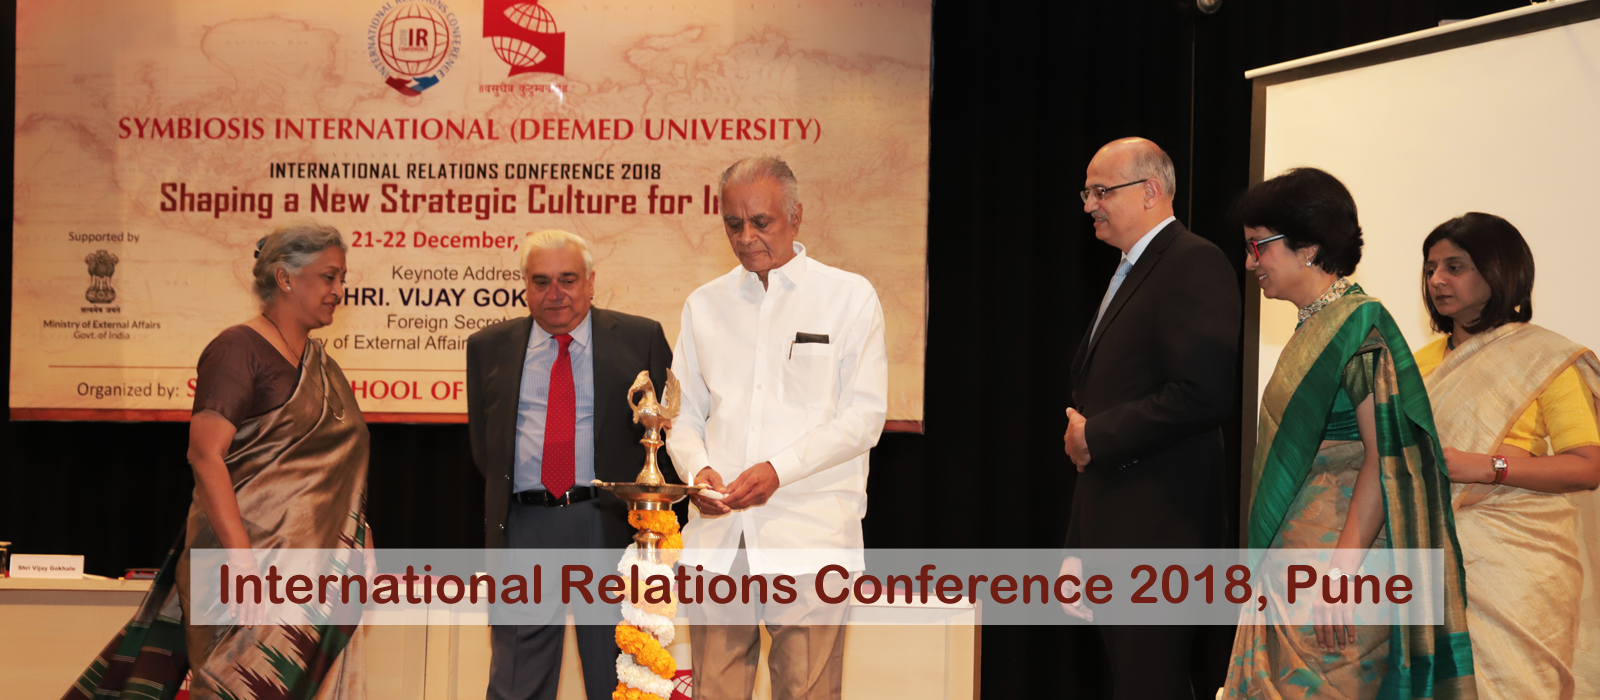 International Relations Conference 2018, Pune